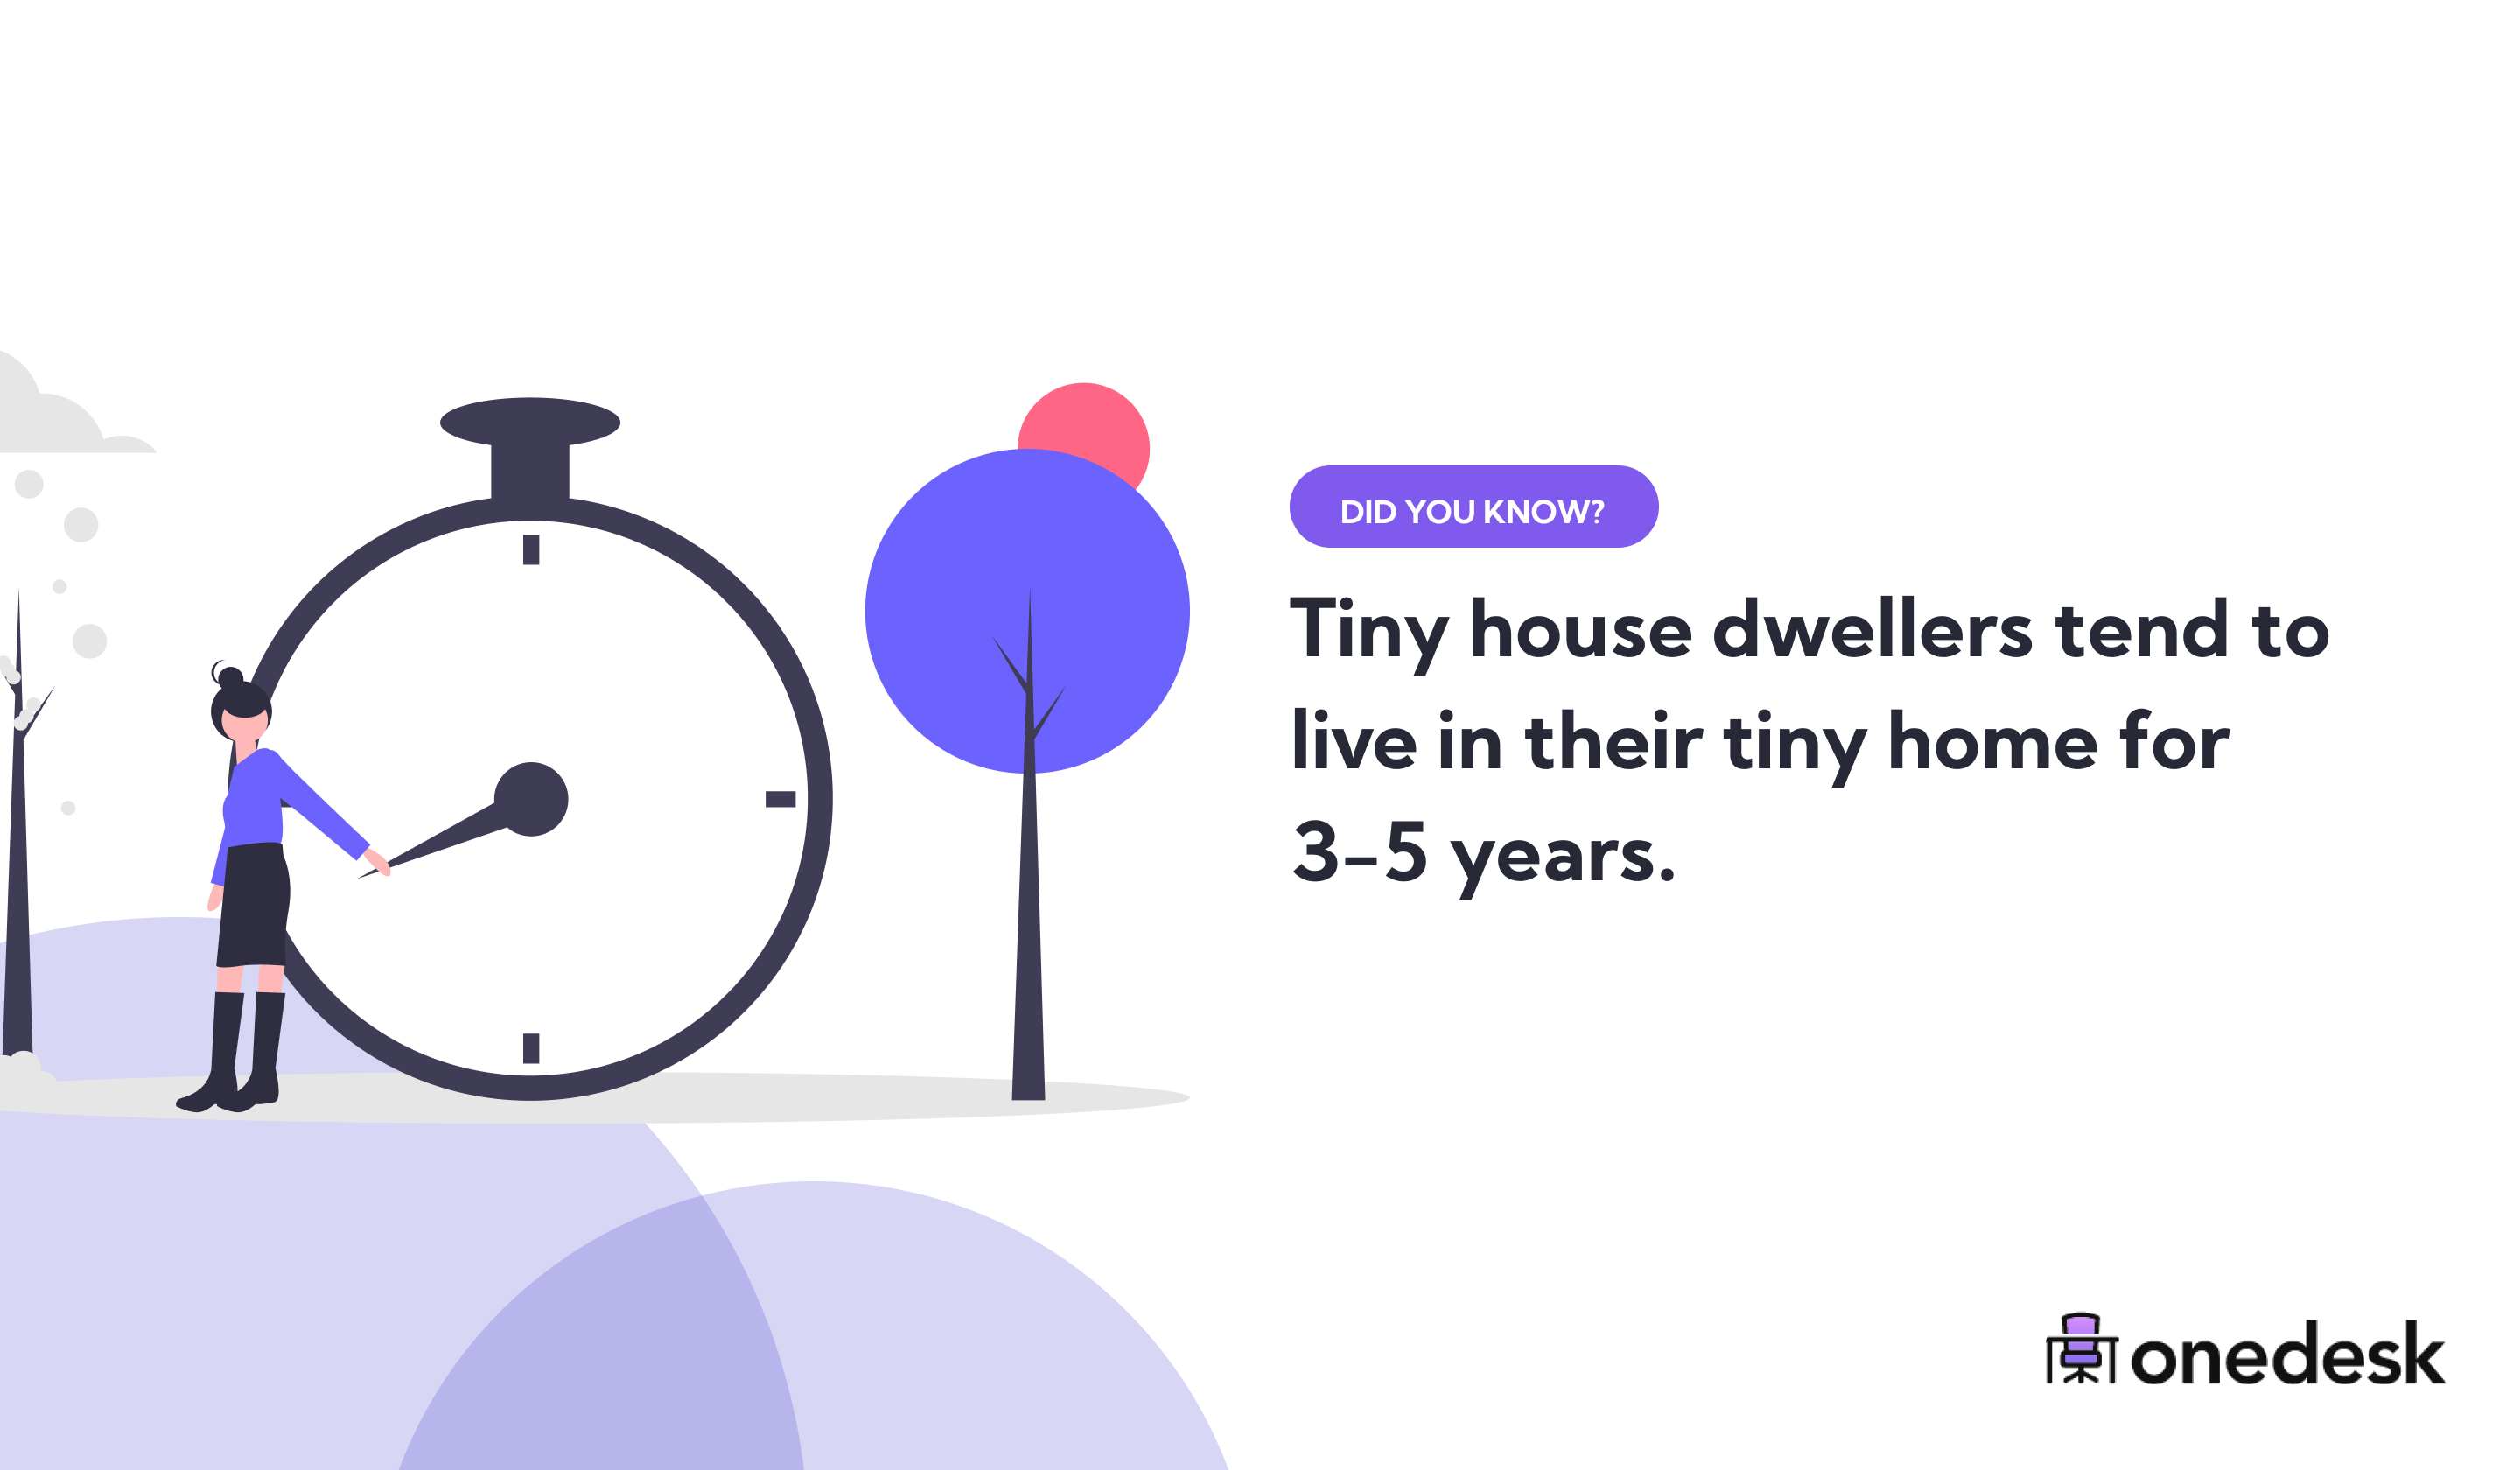 people live in tiny homes for 3 to 5 years